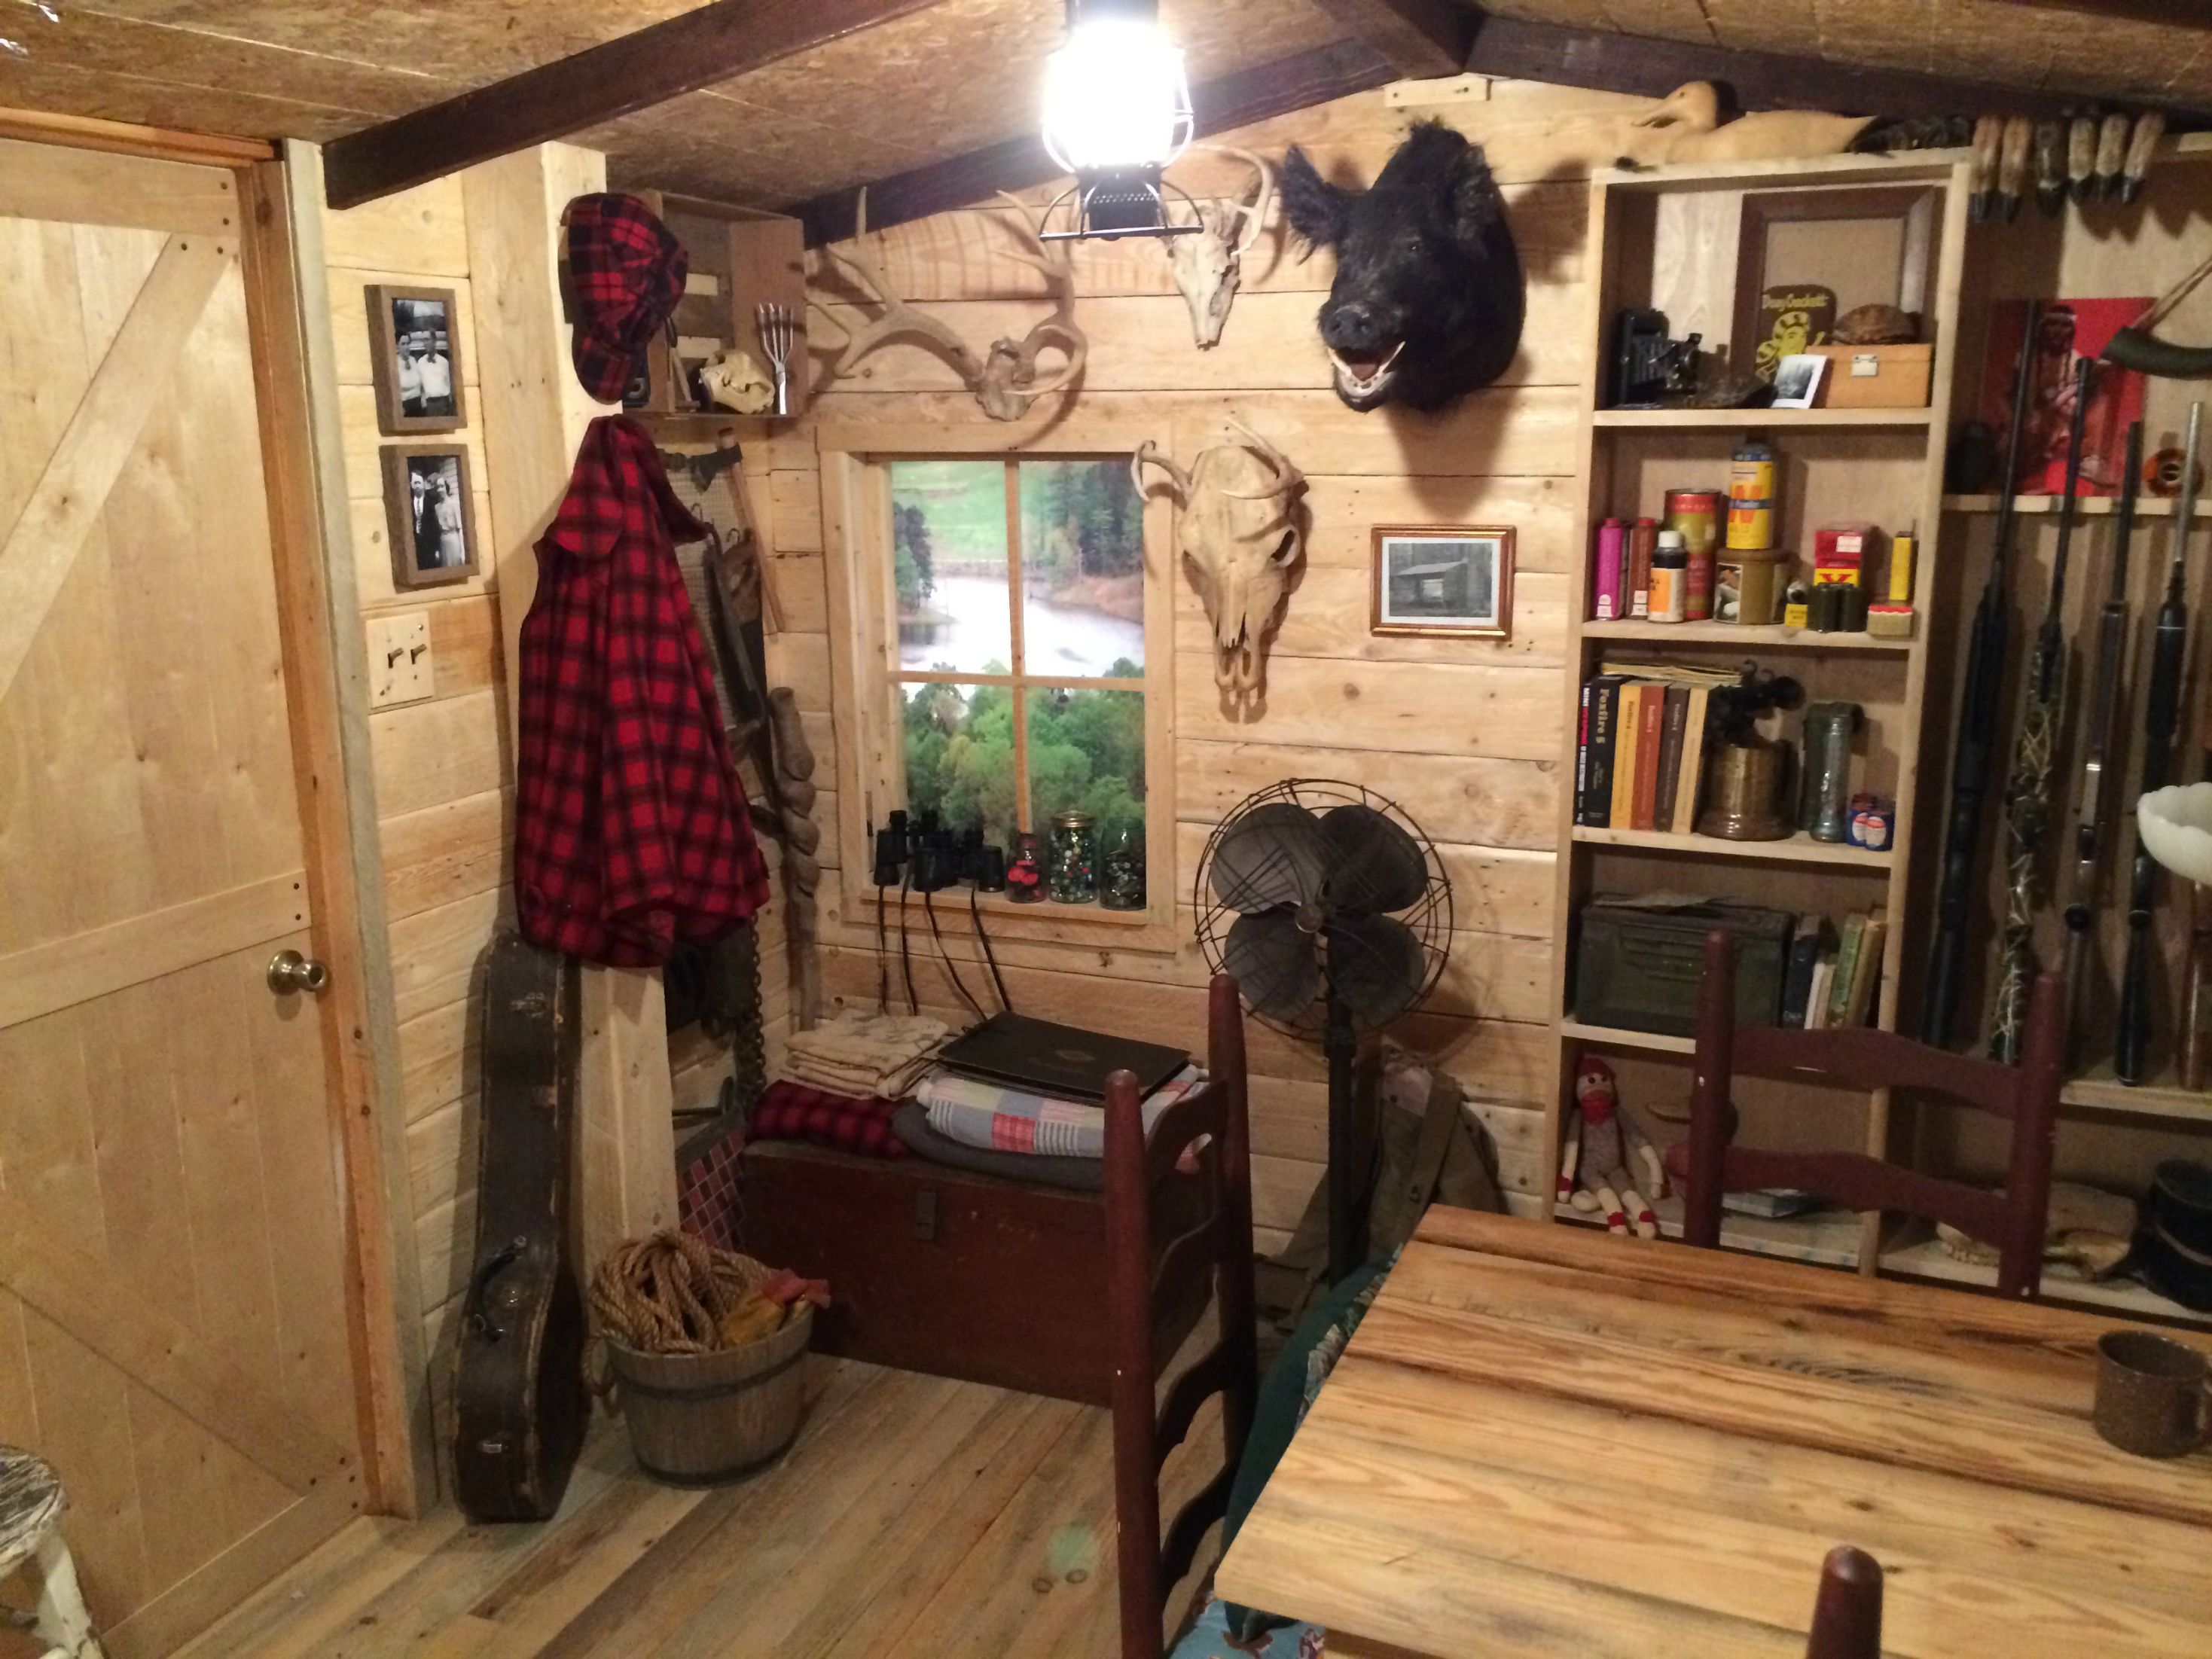 Chic Adventure Journal Weekend Cabin Man Cave That Has To Be Seen To Be Believed Man Cave Store Buford Ga Man Cave Store San Bernardino houzz-02 Man Cave Store